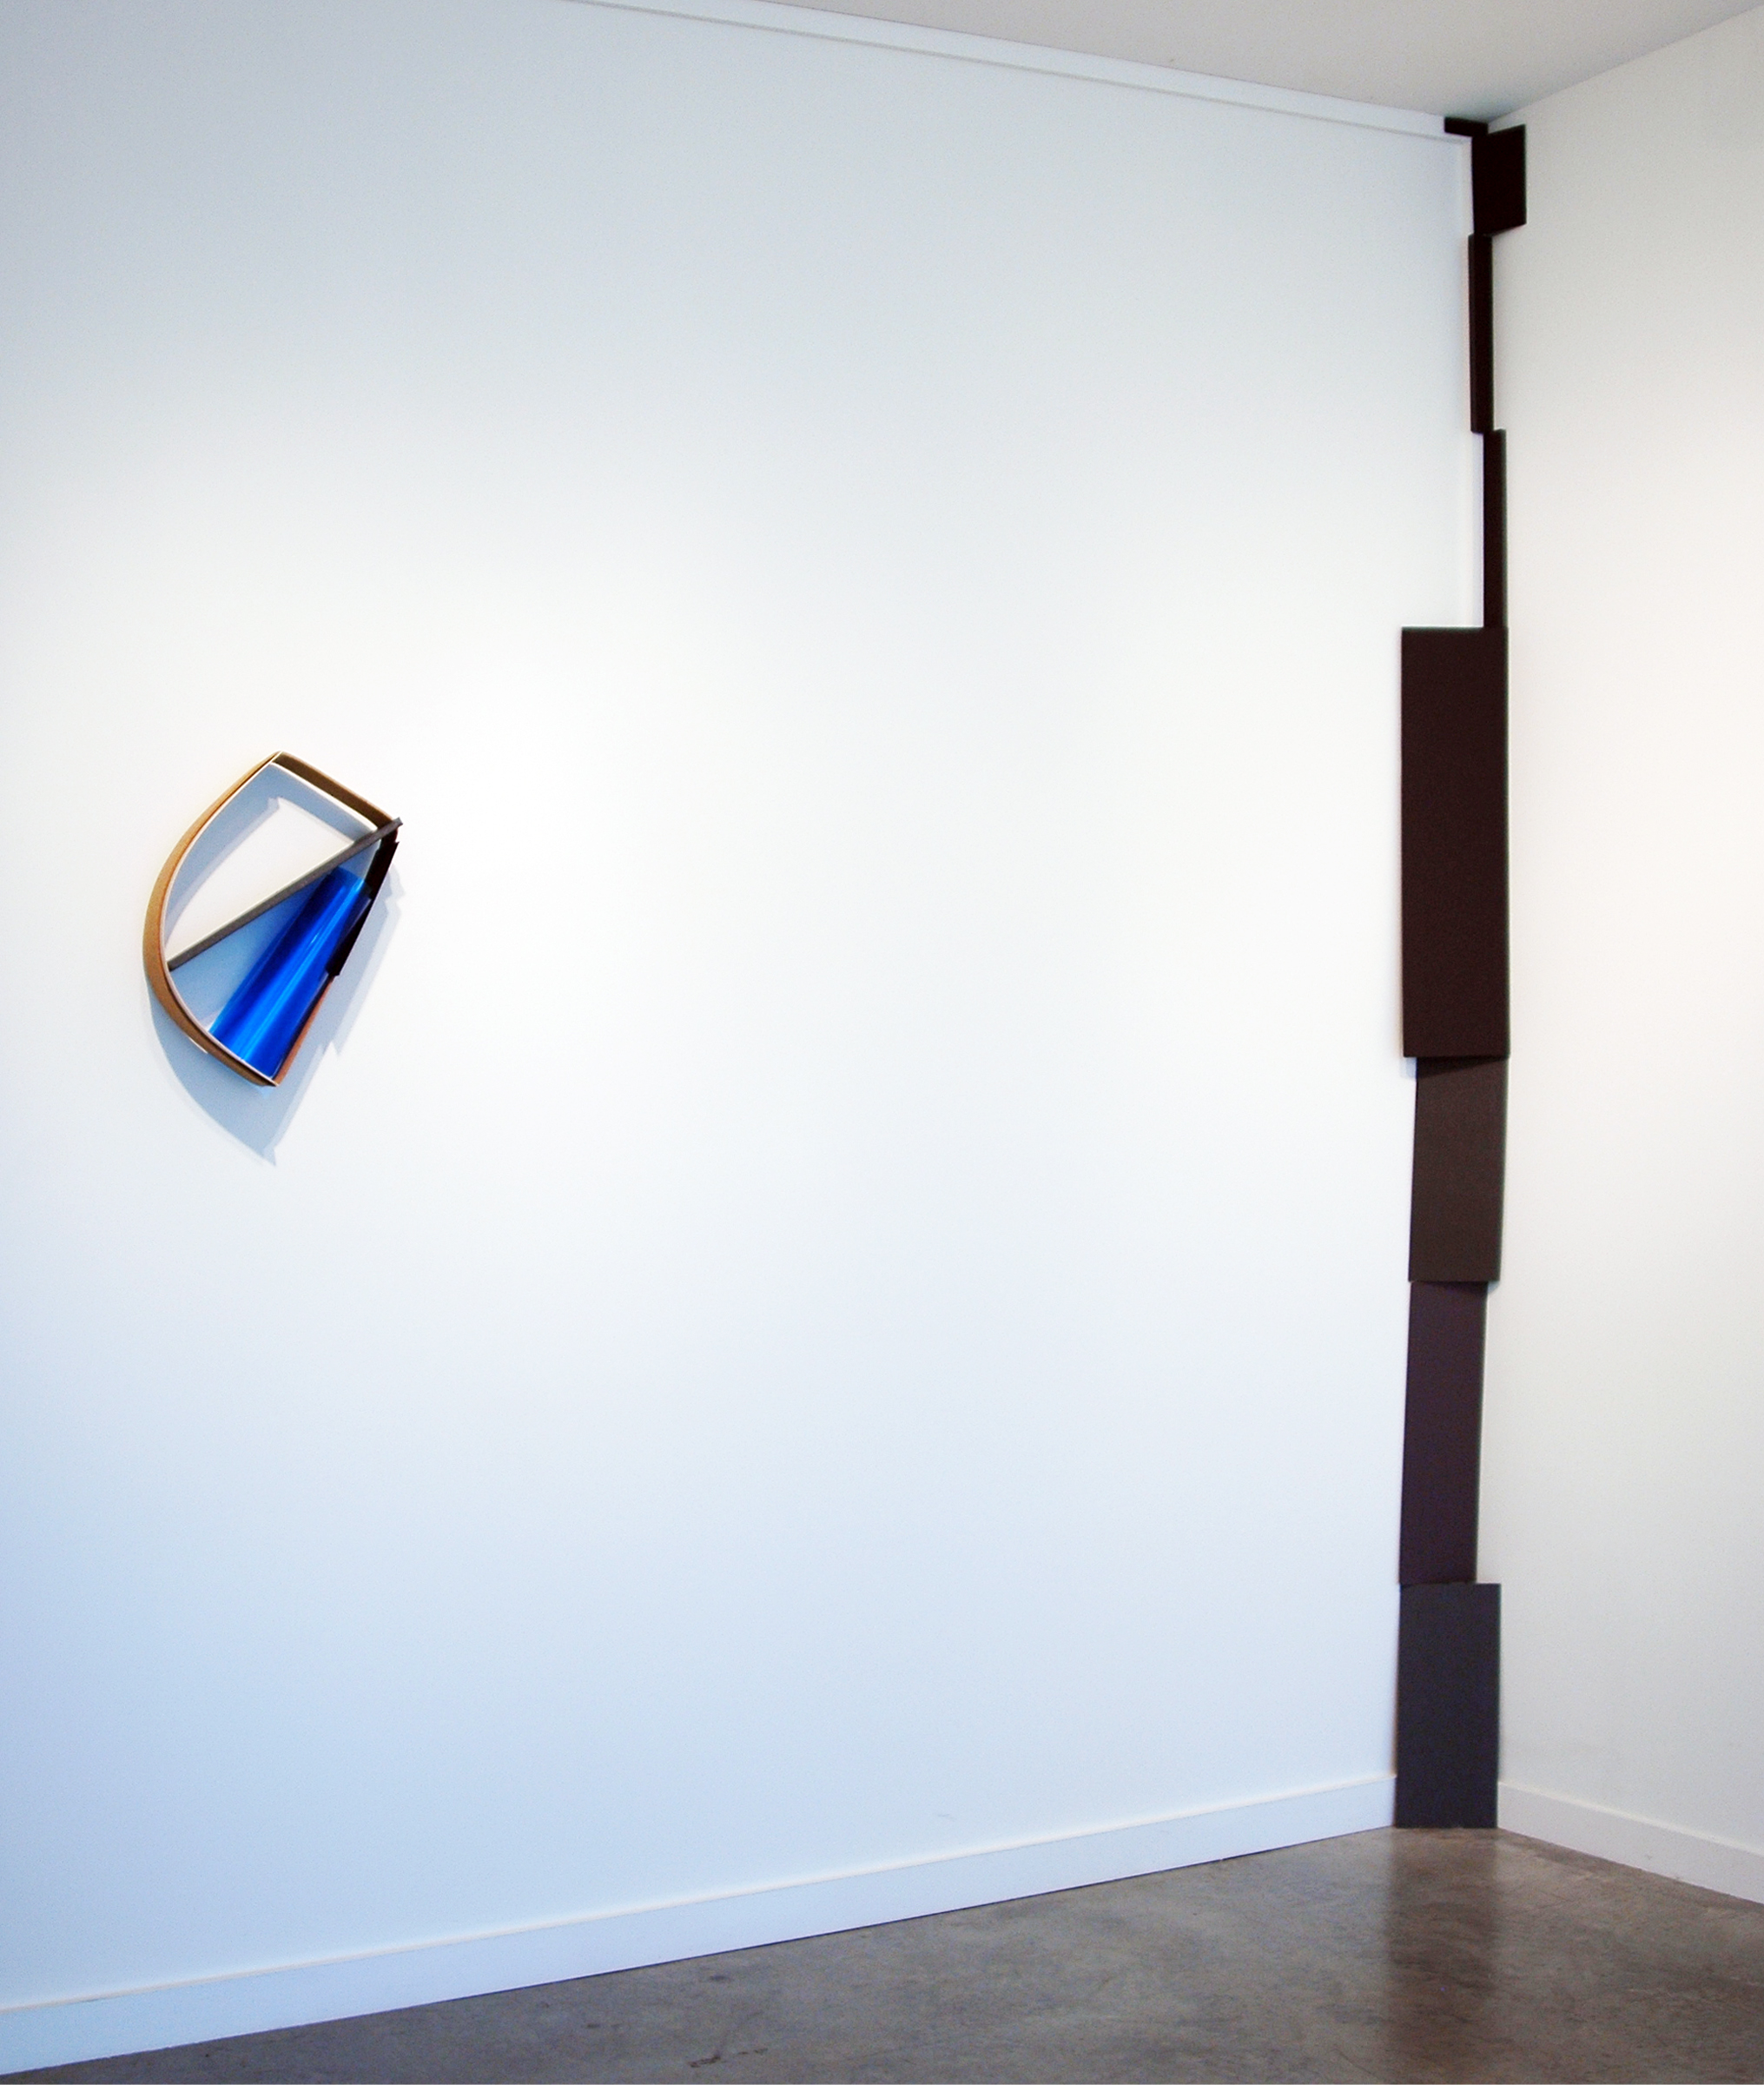 ALICE CATTANEO   NOTHING QUITE FLAT AND MORE ROUND, Installation